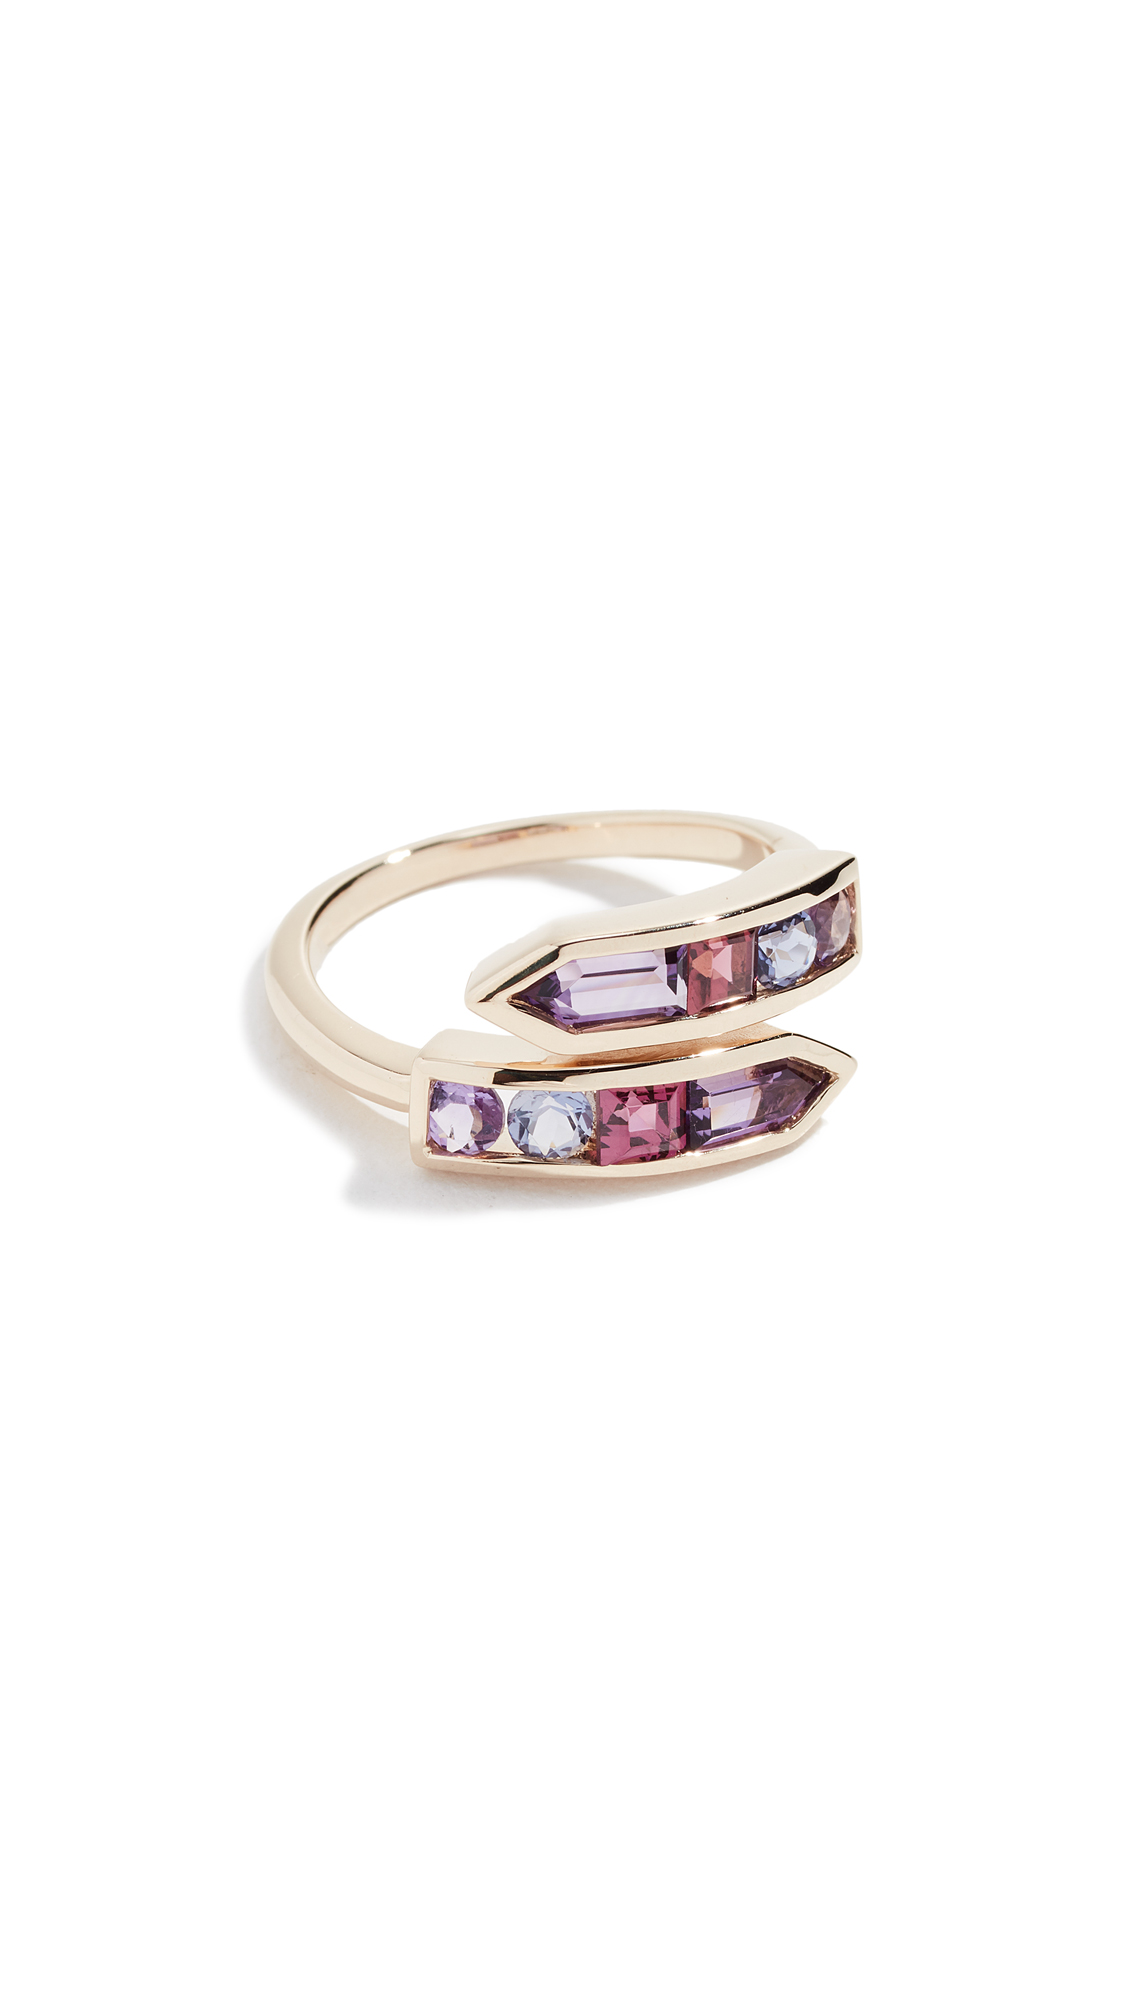 JANE TAYLOR 14K Bypass Arrow Ring in Purple Multi